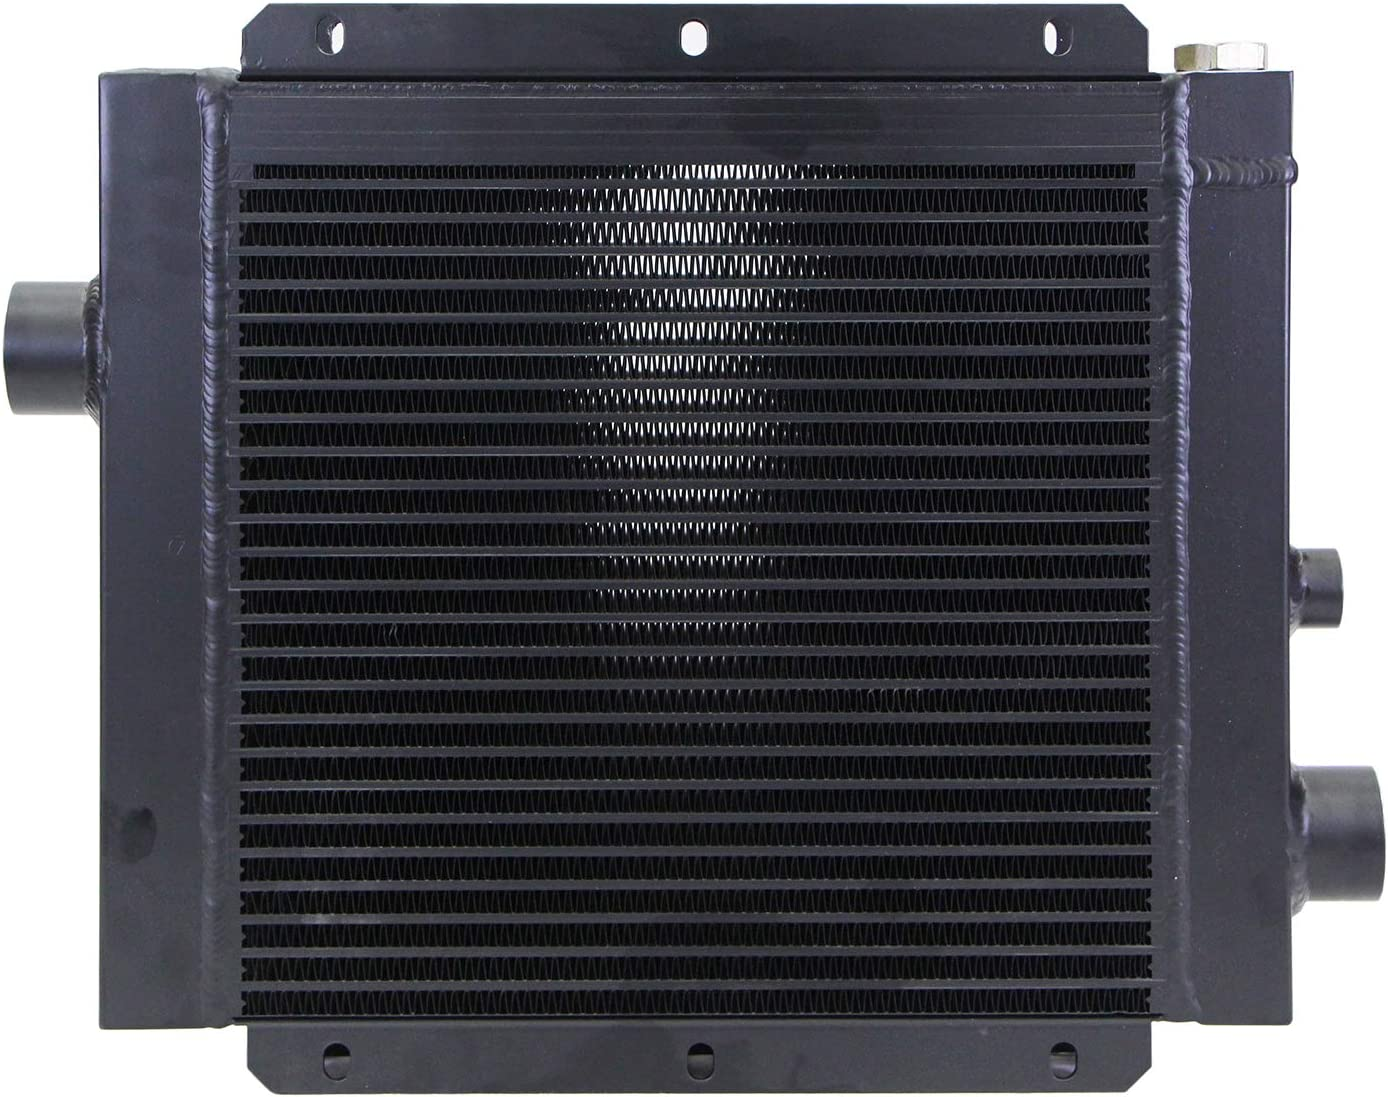 MOBILE HYDRAULIC OIL COOLER 0-60 GPM 20HP; MODEL OC-63 WITH OR WITHOUT BYPASS VALVE No Bypass